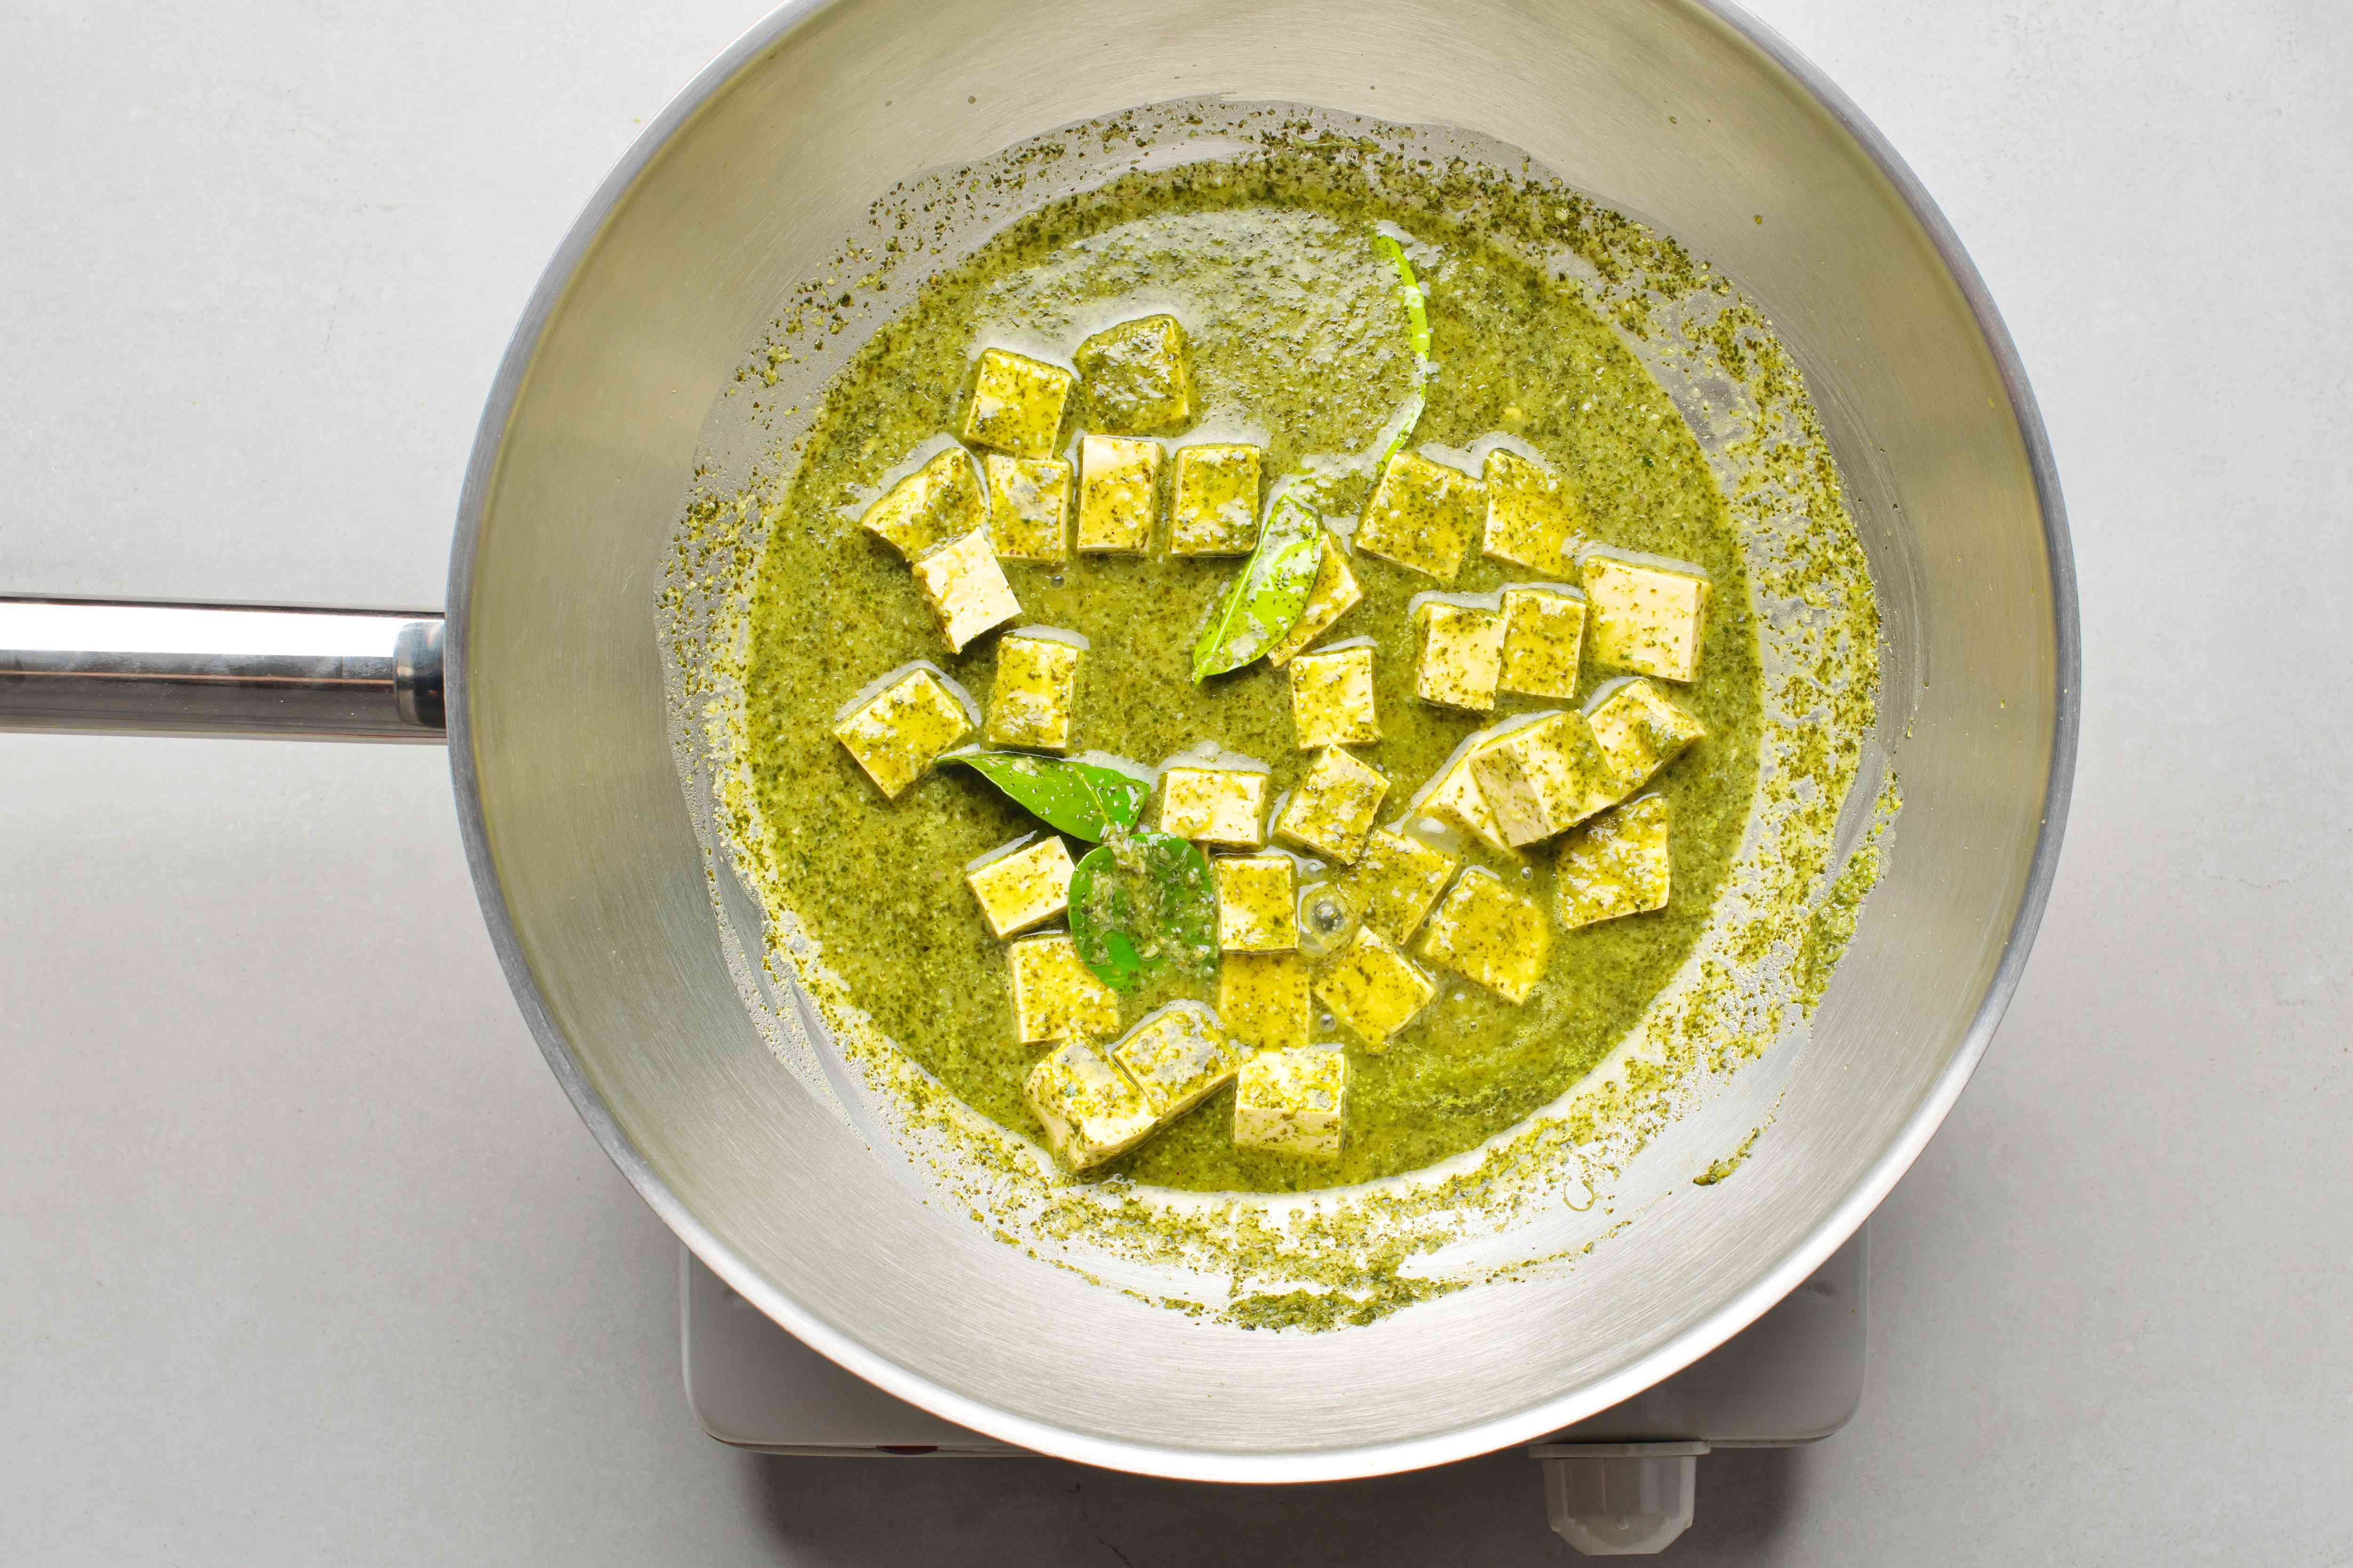 Stock and lime leave added to tofu and green curry in the wok